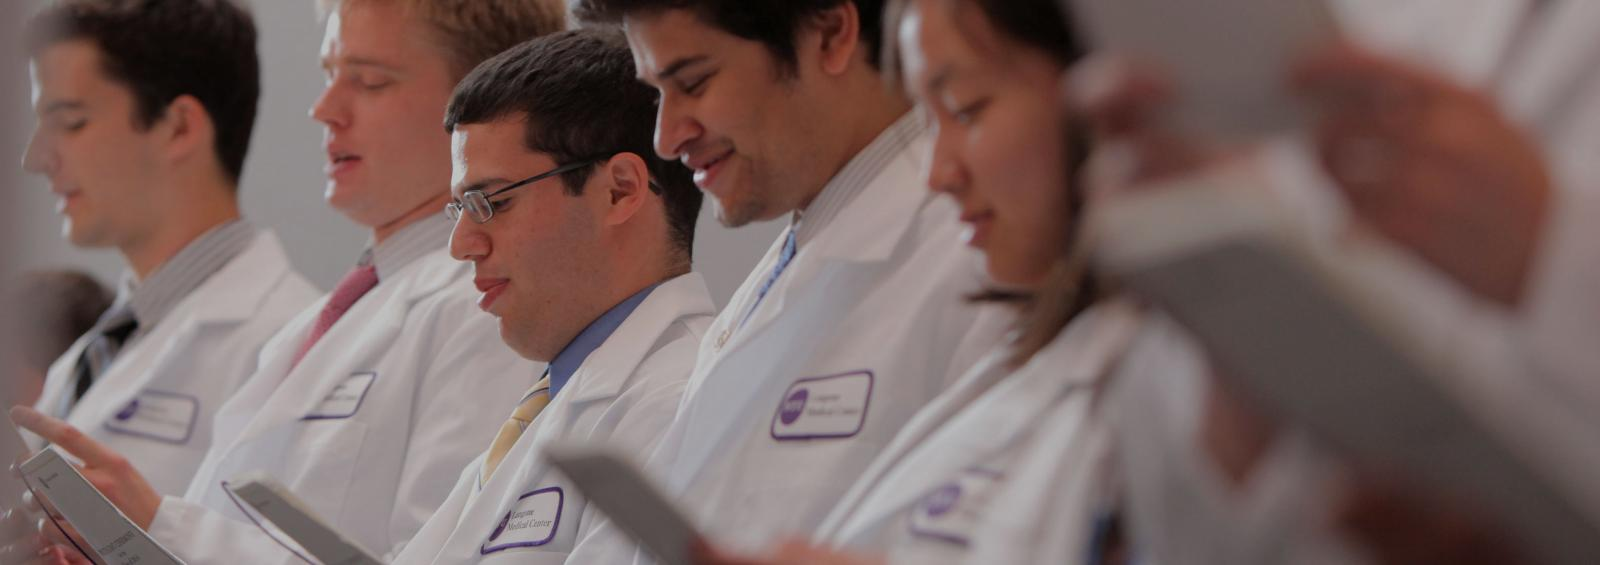 About NYU School of Medicine | NYU Langone Health